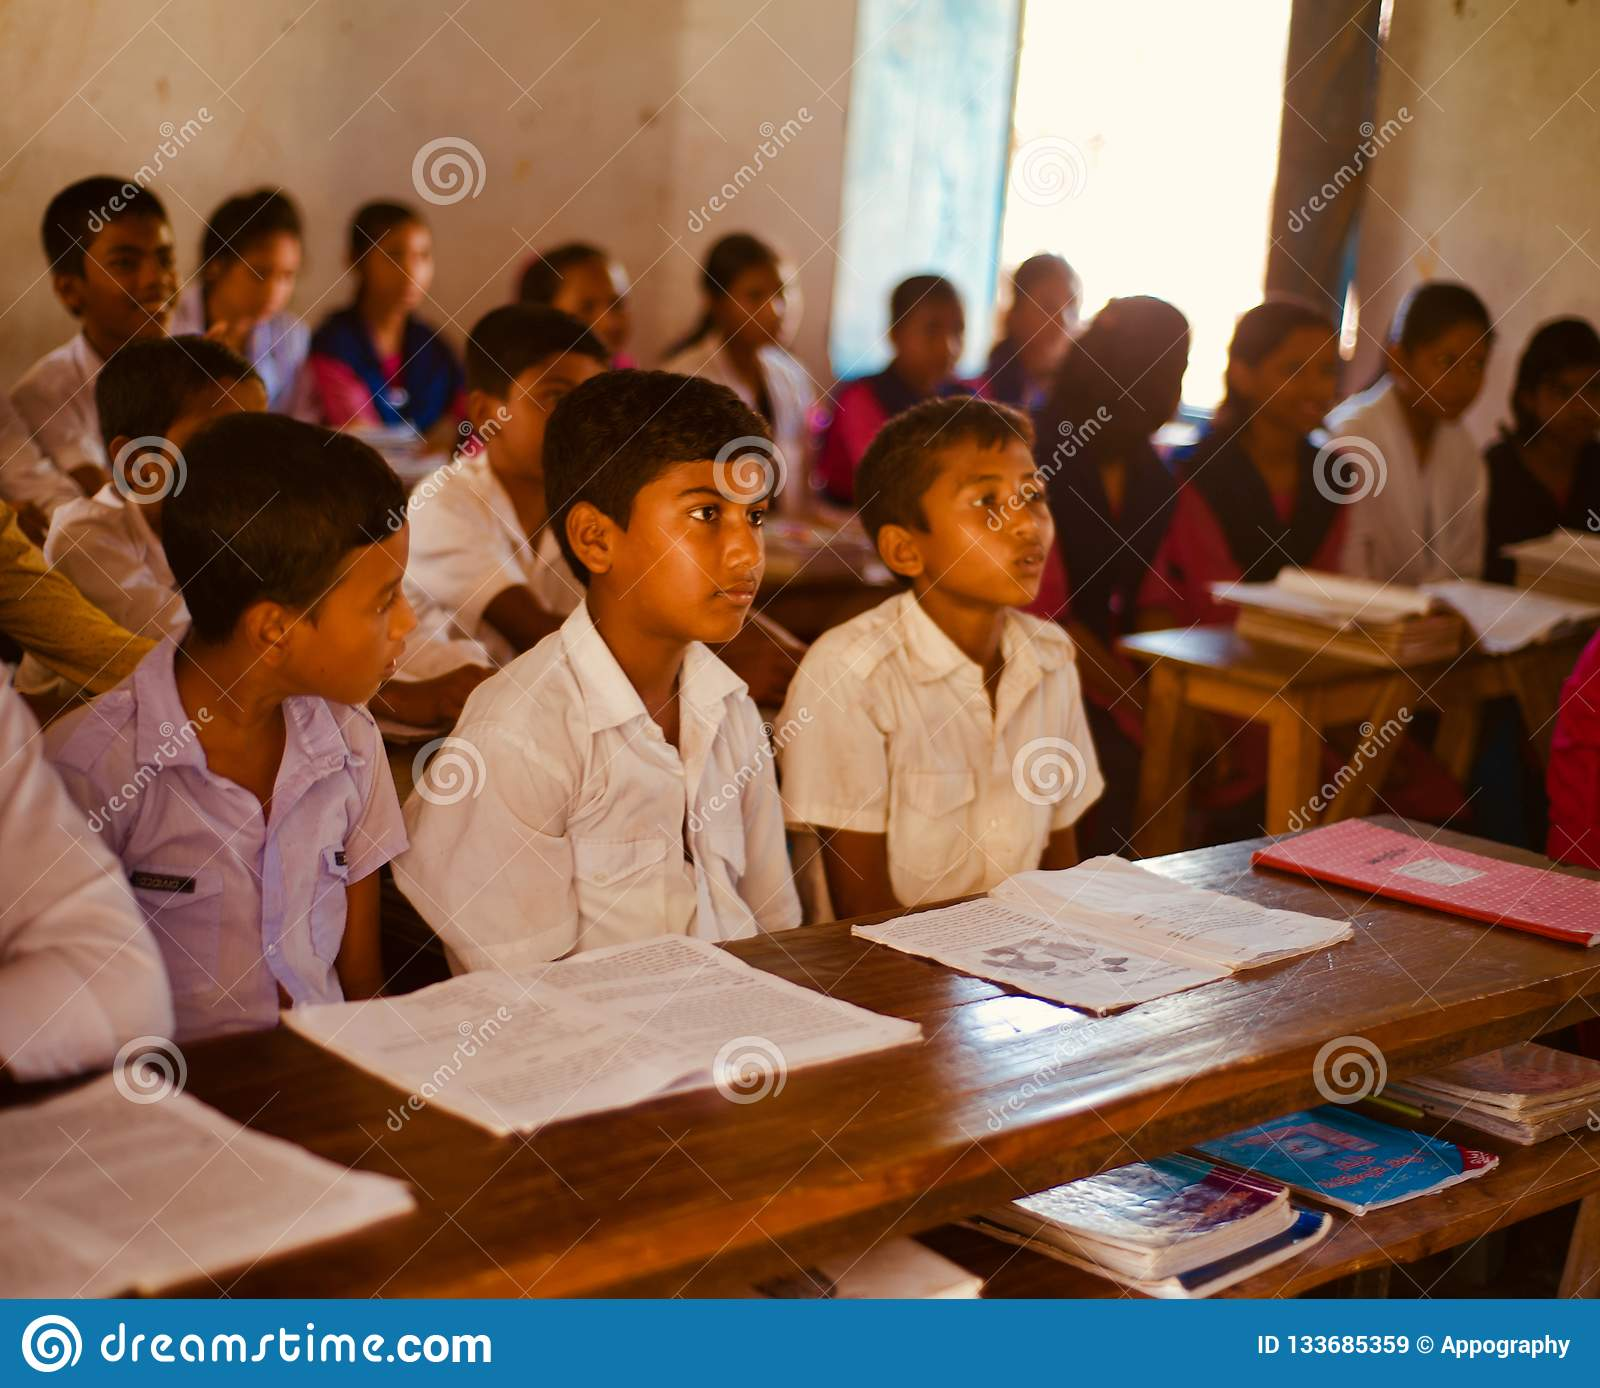 Young boys sitting around a classroom unique photo